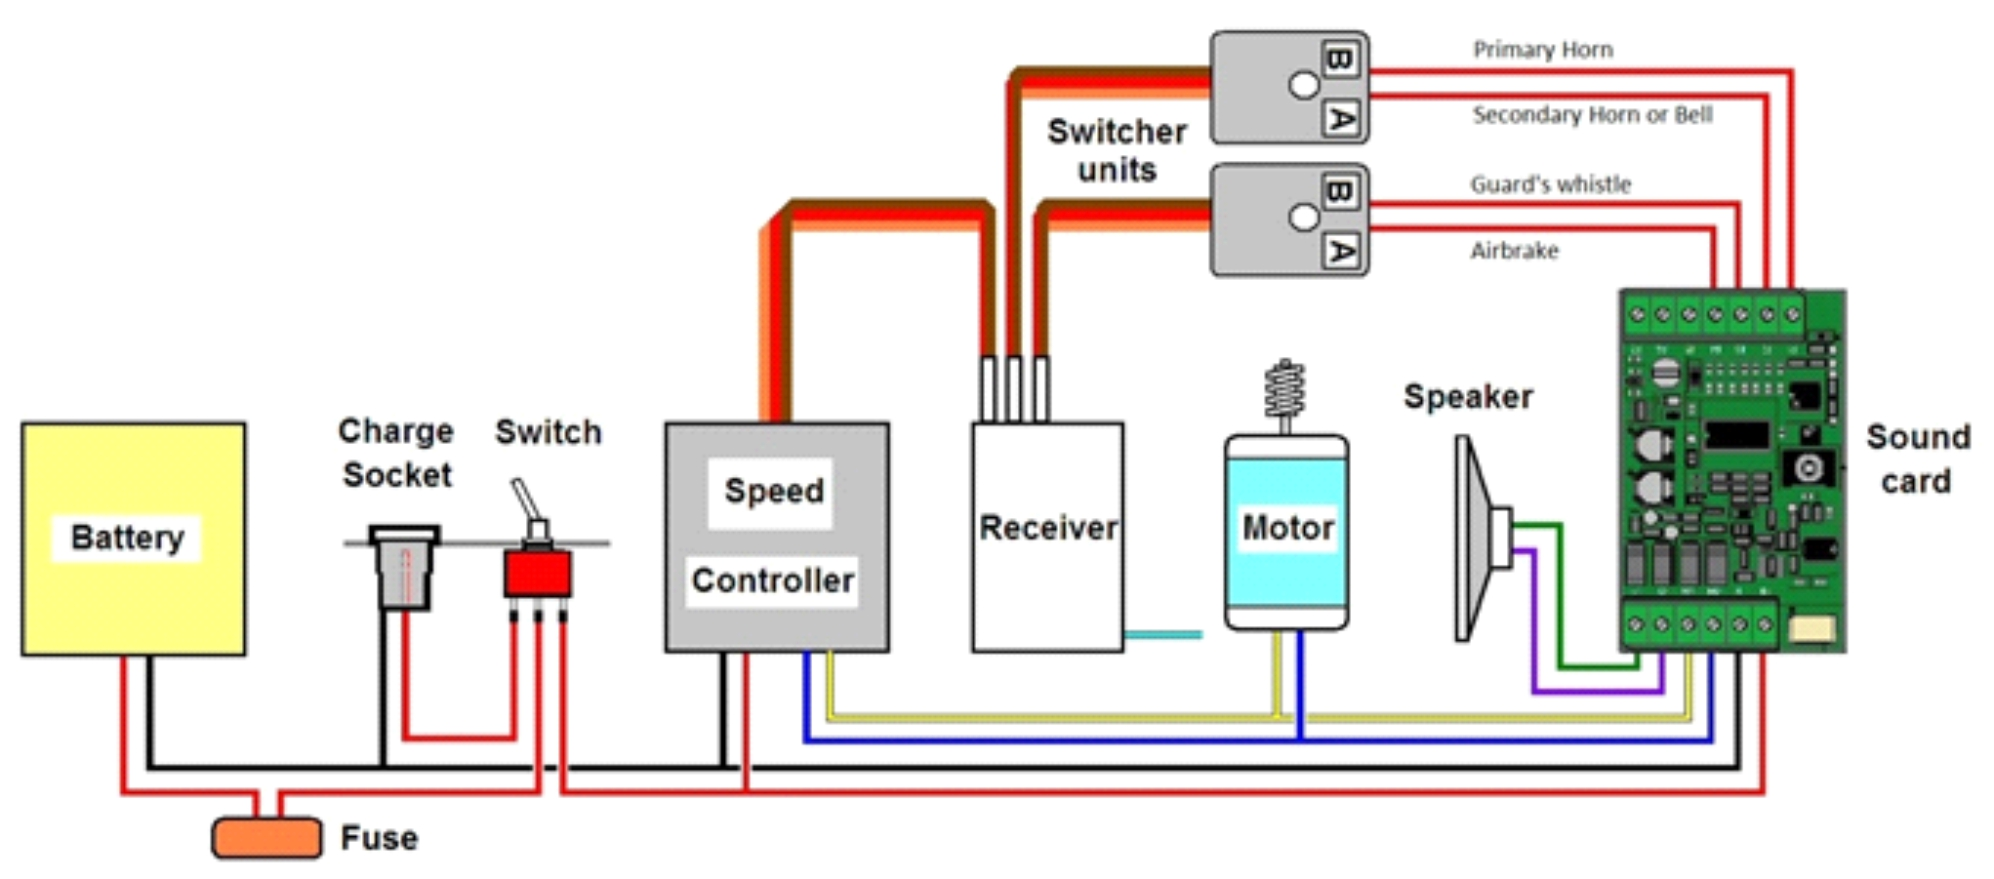 Basic volt boat wiring diagram